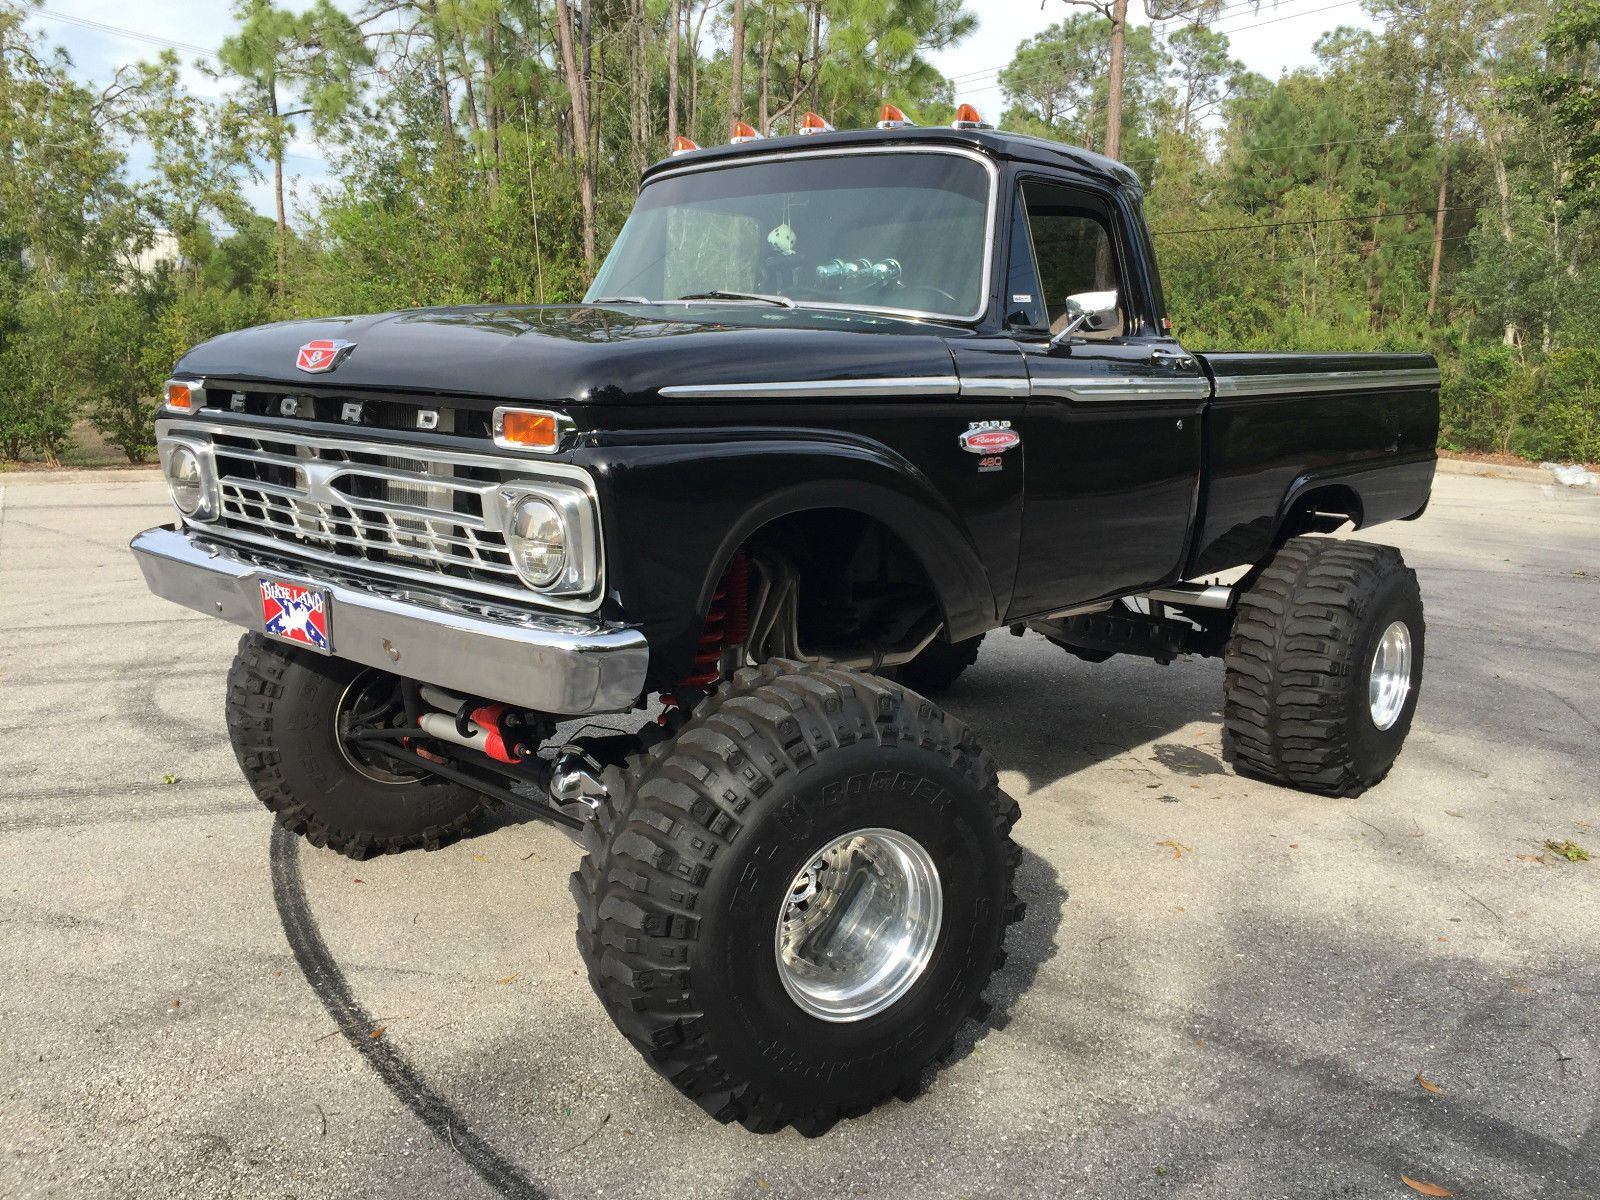 66 Ford 4x4 With Images Ford Trucks Ford Pickup Trucks 4x4